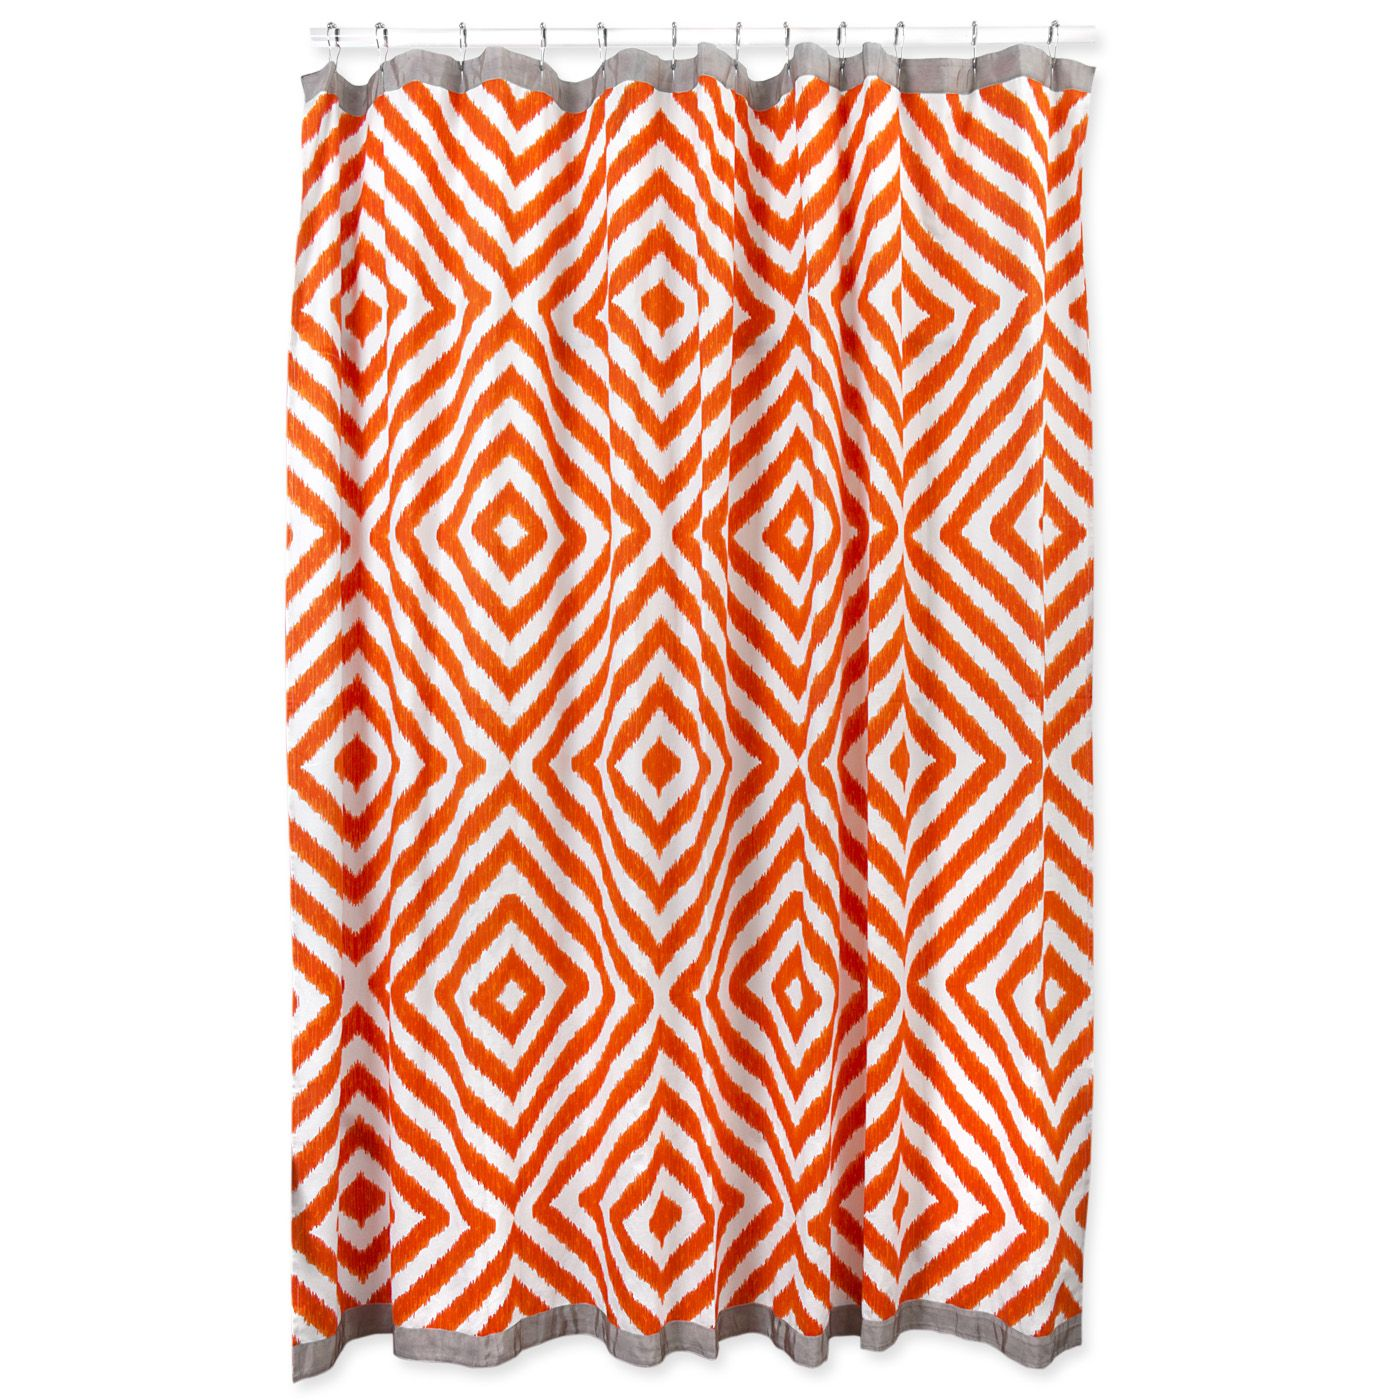 98 Jonathan Adler Arcade Shower Curtain In Shower Curtains Love